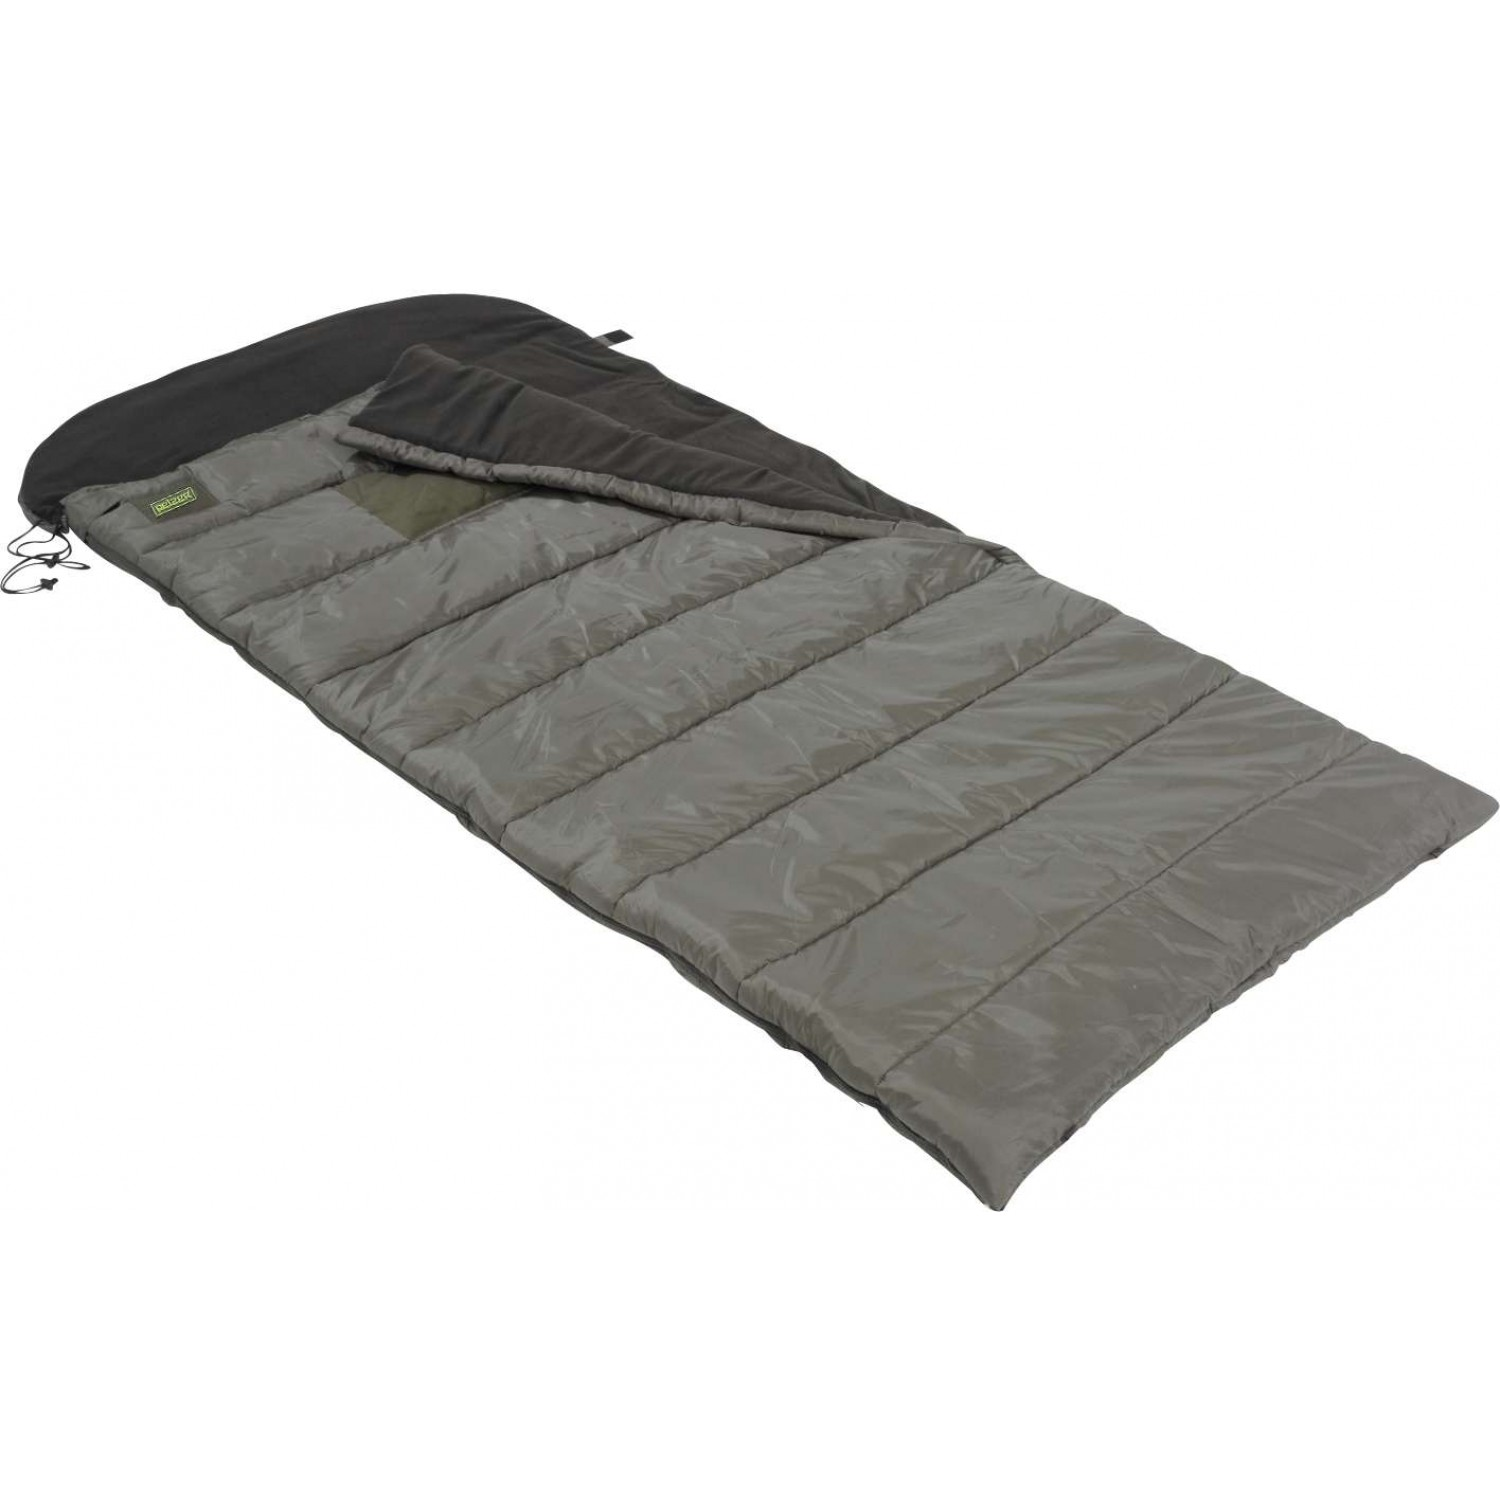 Pelzer Comfort Sleeping Bag 200 x 90cm